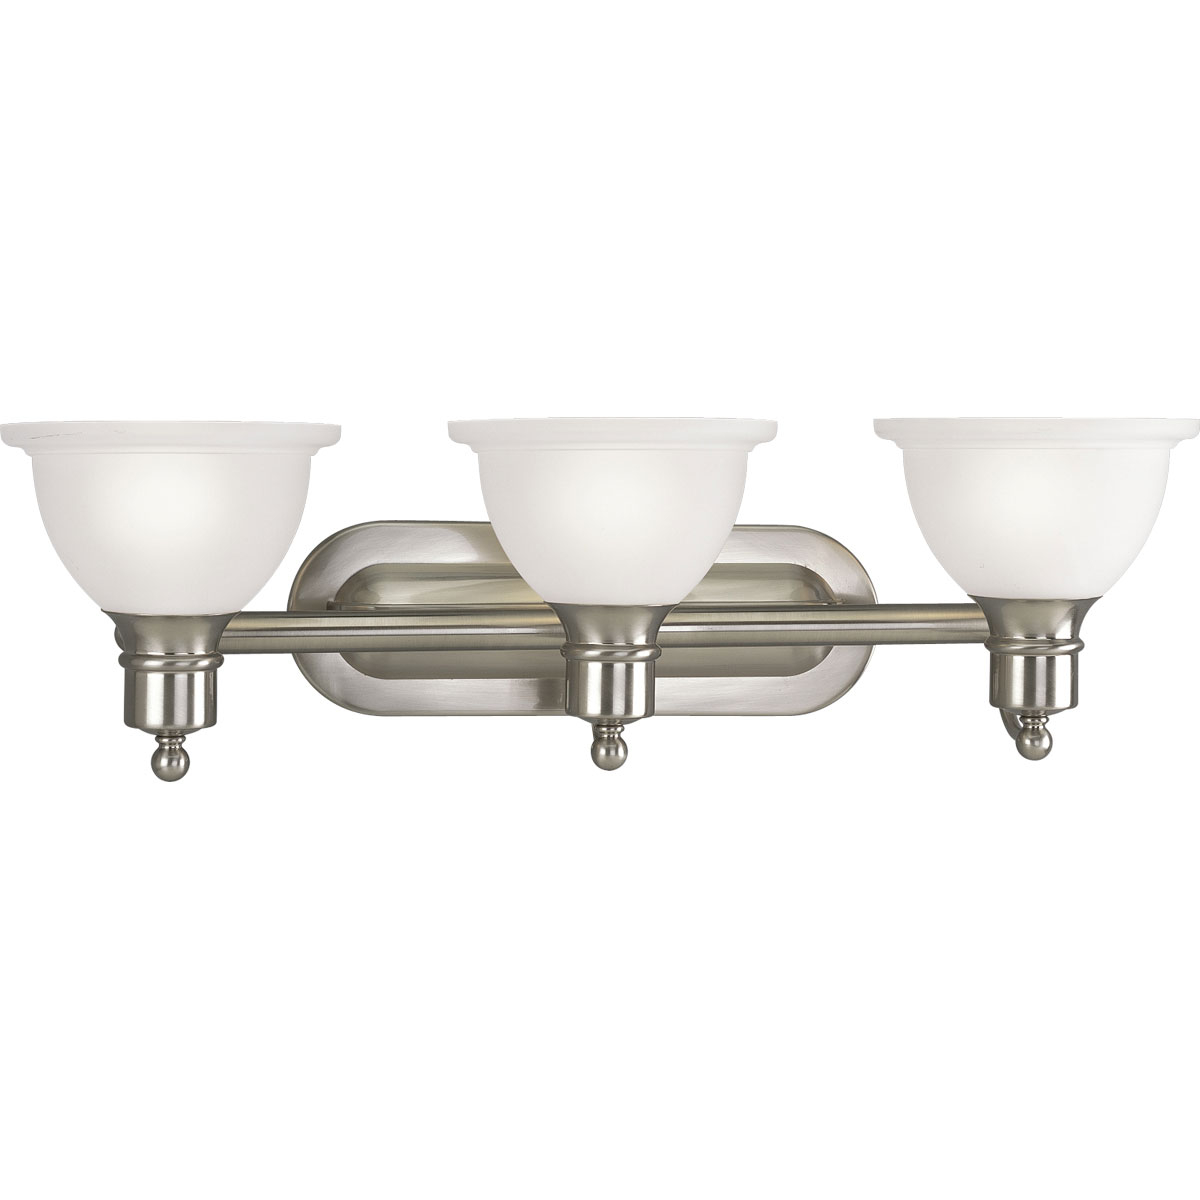 PRO P3163-09 Three Light Brushed Nickel Etched Glass Vanity 3X100M